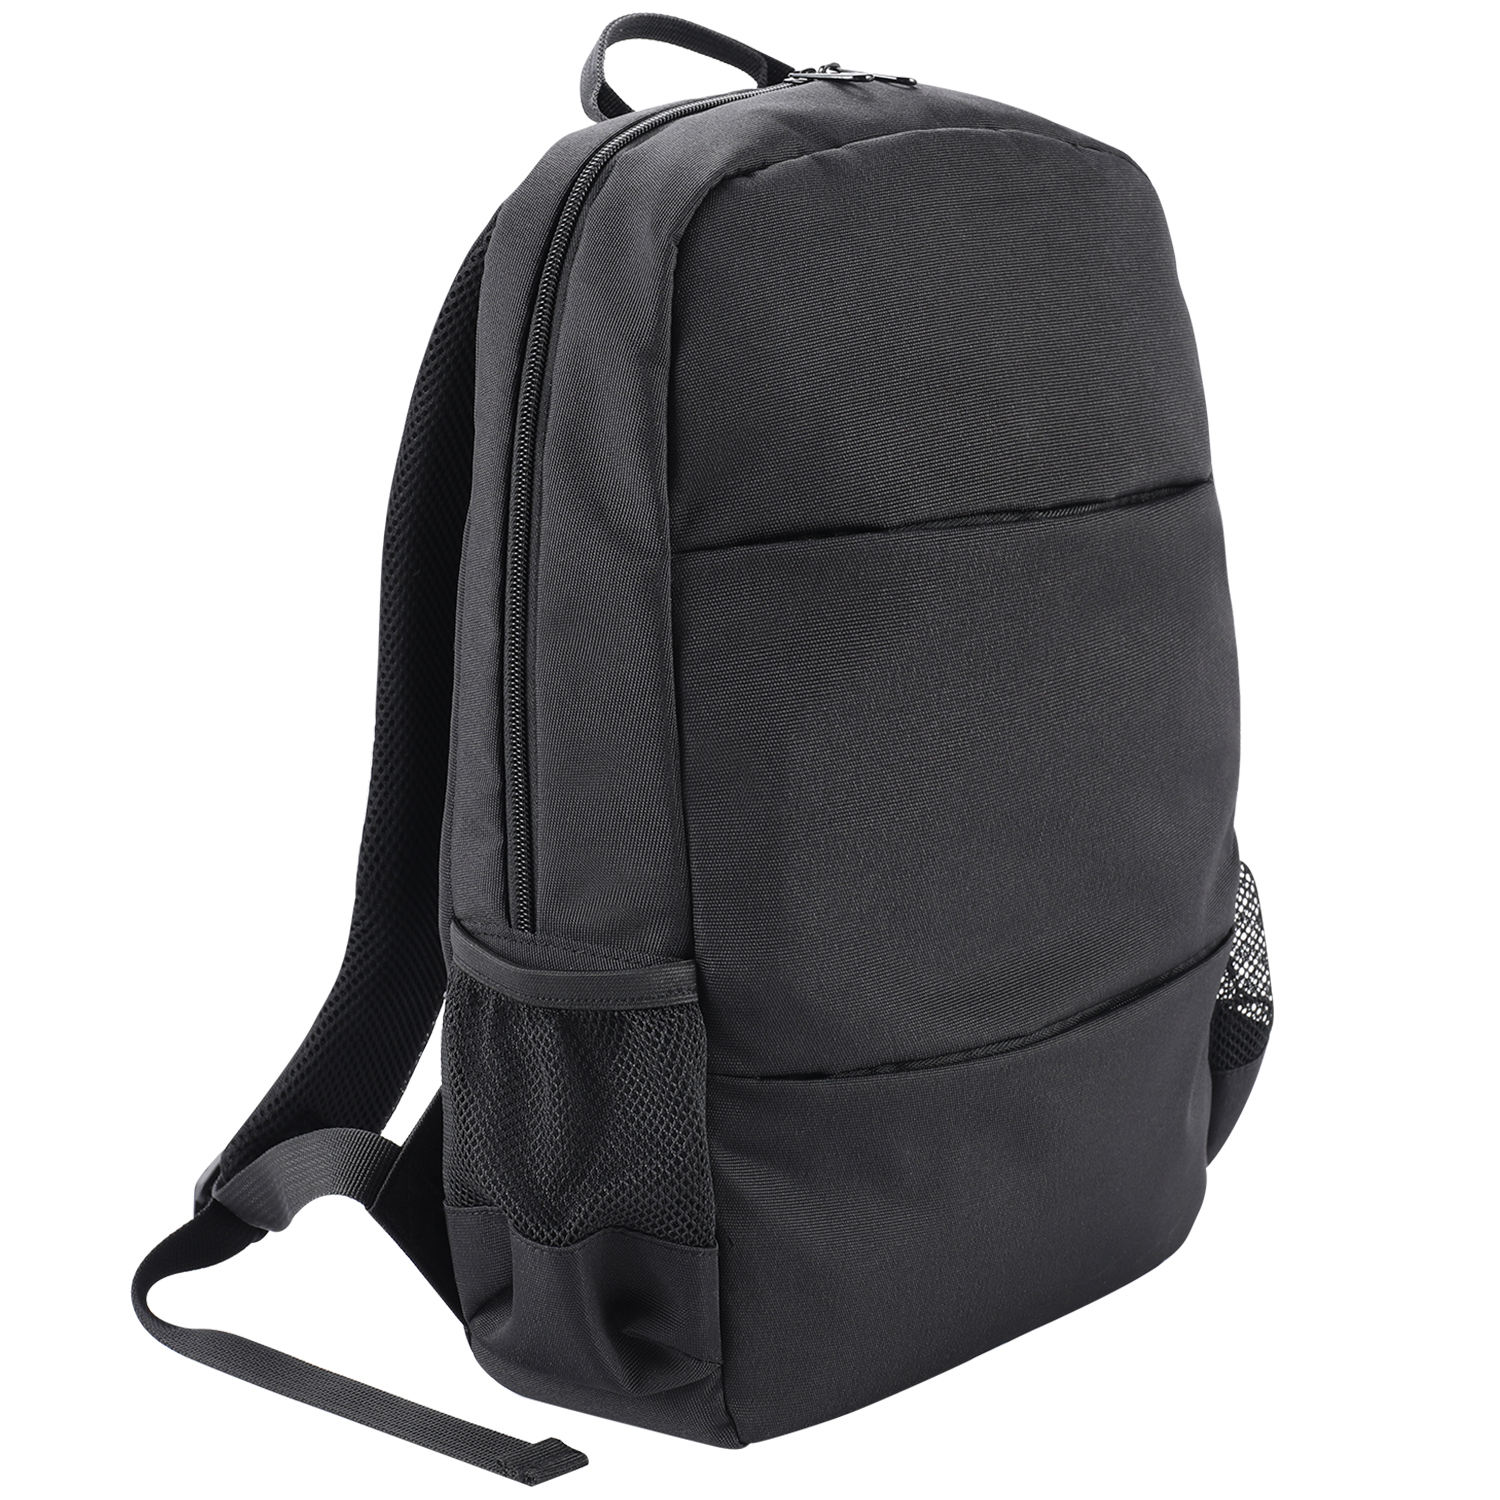 2020 new arrival Expandable bag mens laptop backpack bags